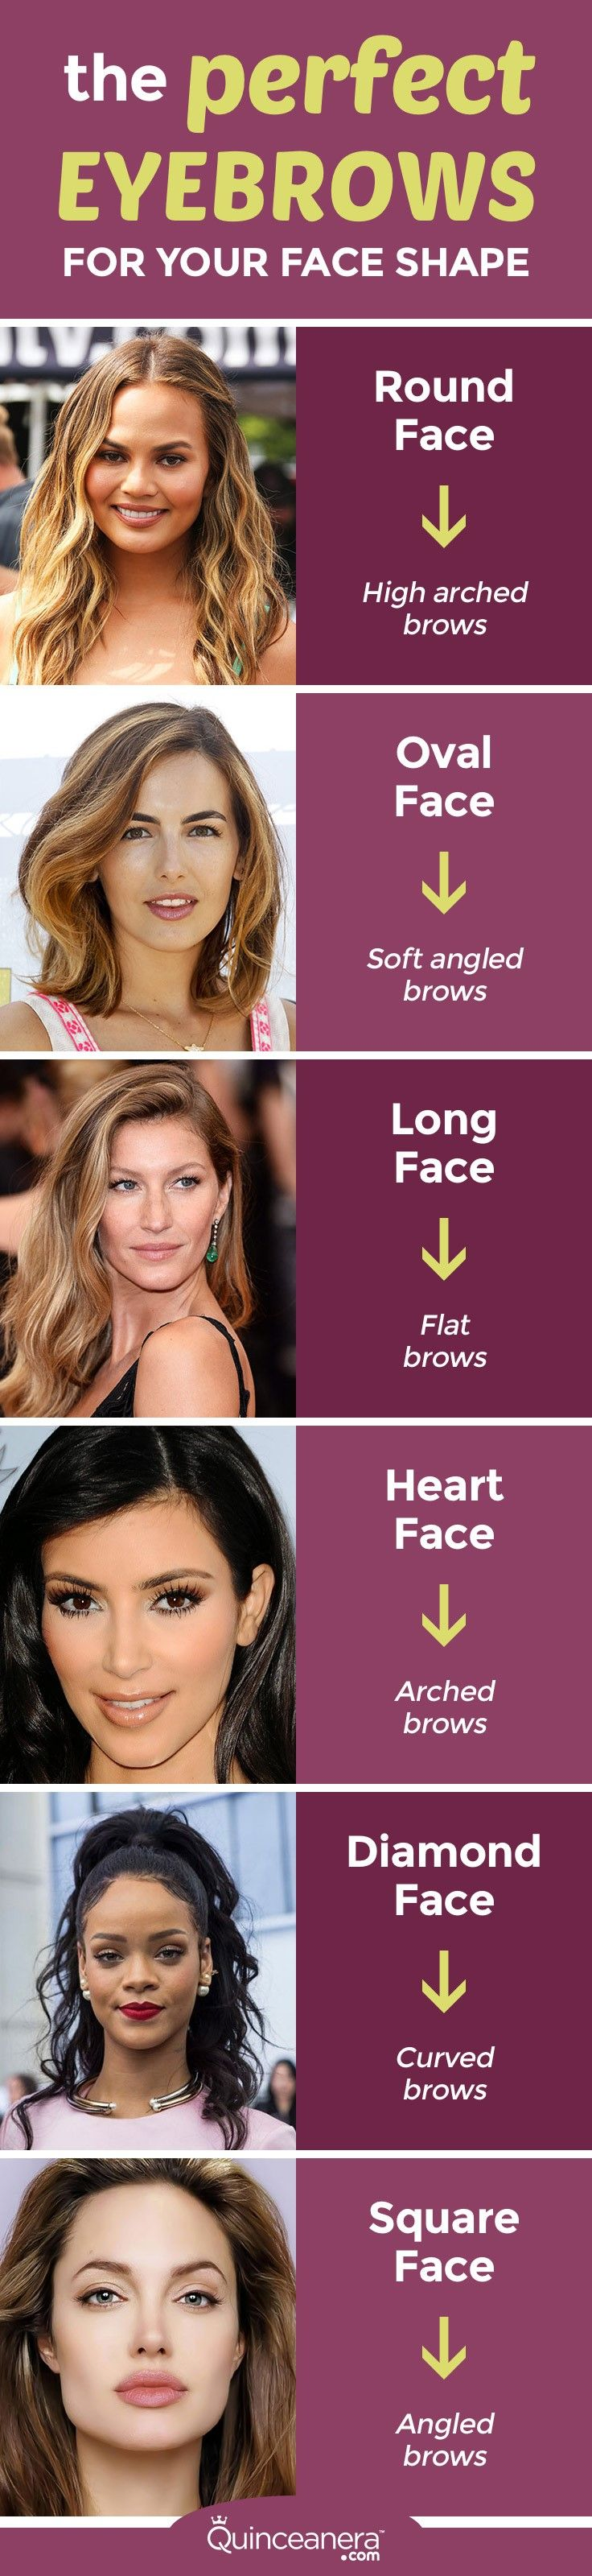 Find out which shape will flatter you before you step into the salon!  - See more at: http://www.quinceanera.com/make-up/perfect-eyebrows-face-shape/?utm_source=pinterest&utm_medium=social&utm_campaign=make-up-perfect-eyebrows-face-shape#sthash.DKHj3Xuu.dpuf